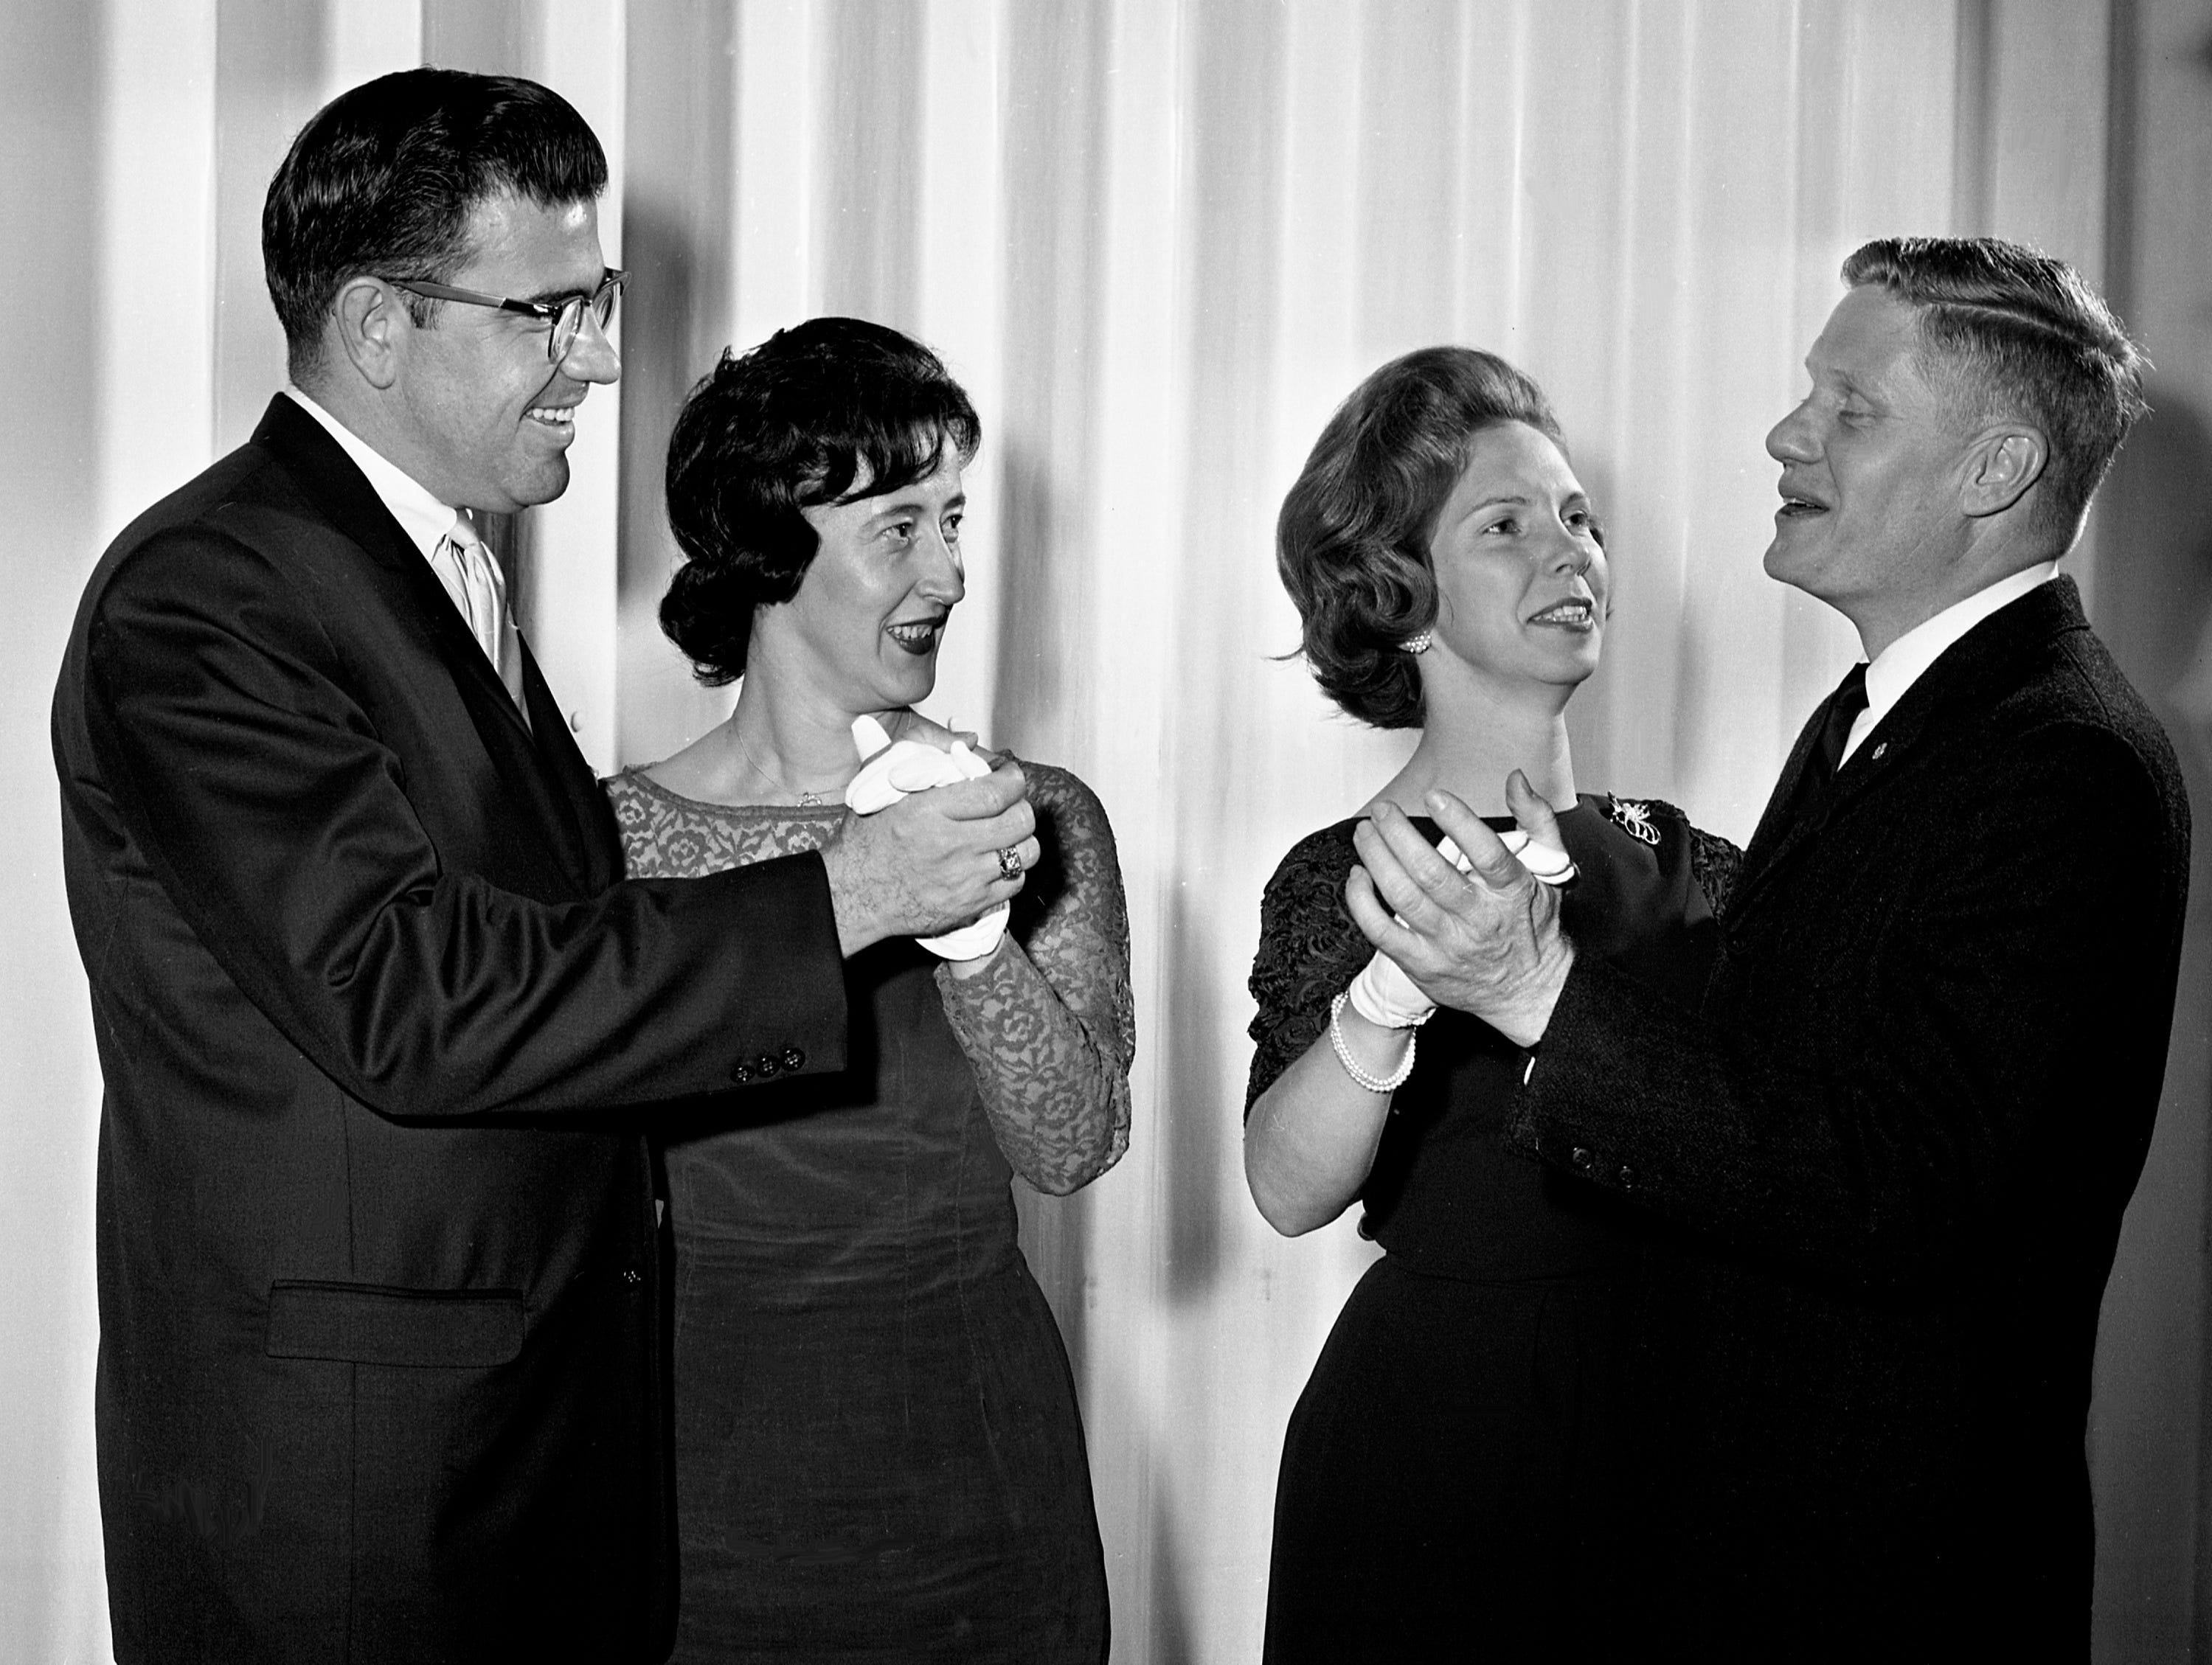 Richland Country Club is the scene of the Lions Club annual Valentine Party on Feb. 13, 1964. Dancing to the music of Hank Corcoran Orchestra are Mr. and Mrs. Rodney Ahles, left, and Mrs. and Mr. Robert E. Cowan Jr. Cowan is president of Lions Club.